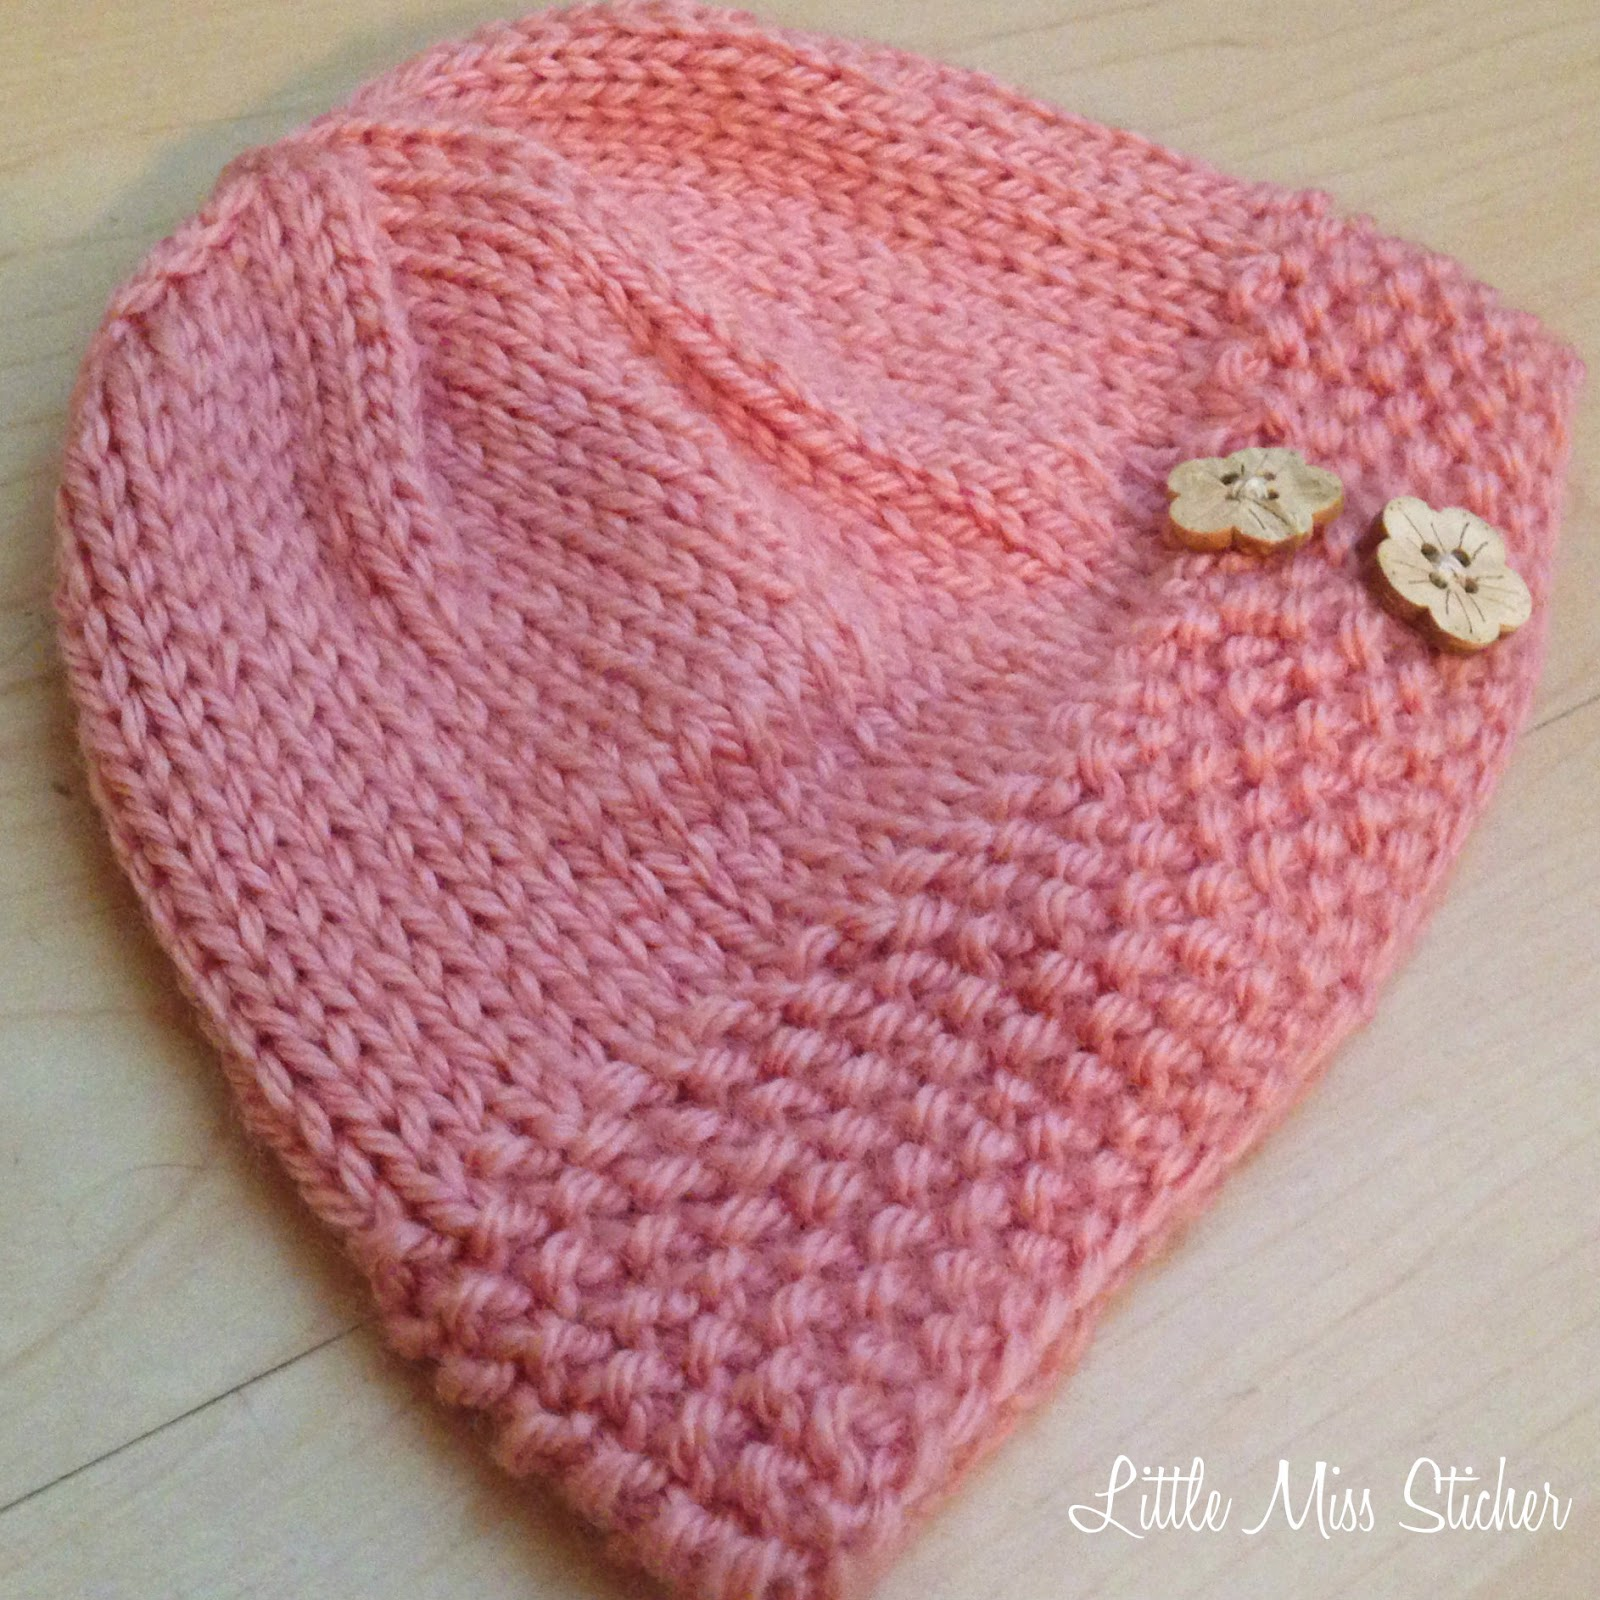 Free Knitting Pattern Beanie : Little Miss Stitcher: Bitty Beanie Free Knit Pattern